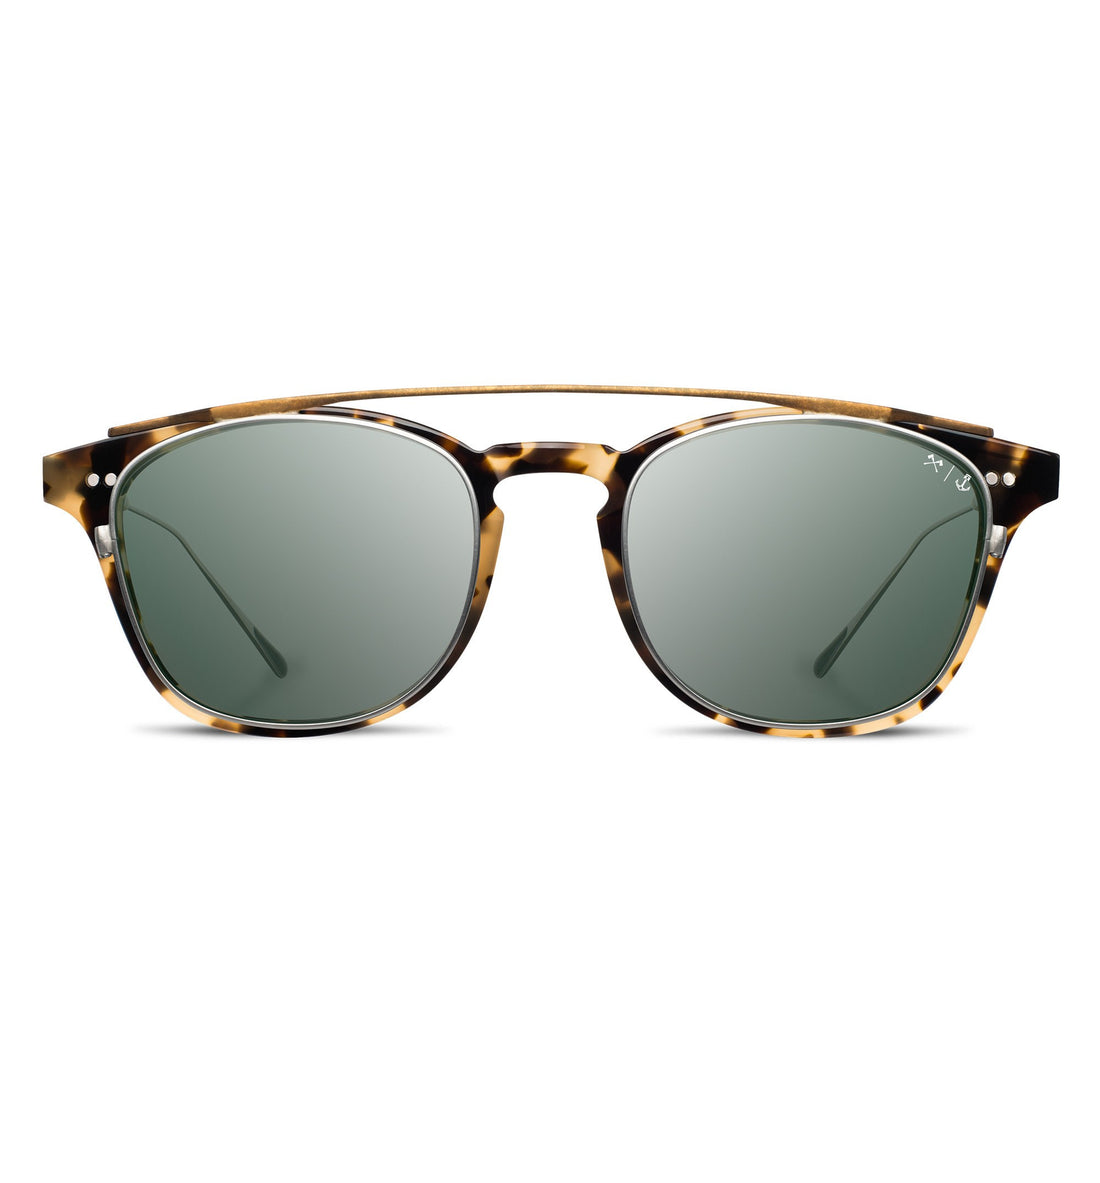 InR x Shwood - Kennedy Clip - Havana/G15/Polarized - Sunglasses - Iron and Resin